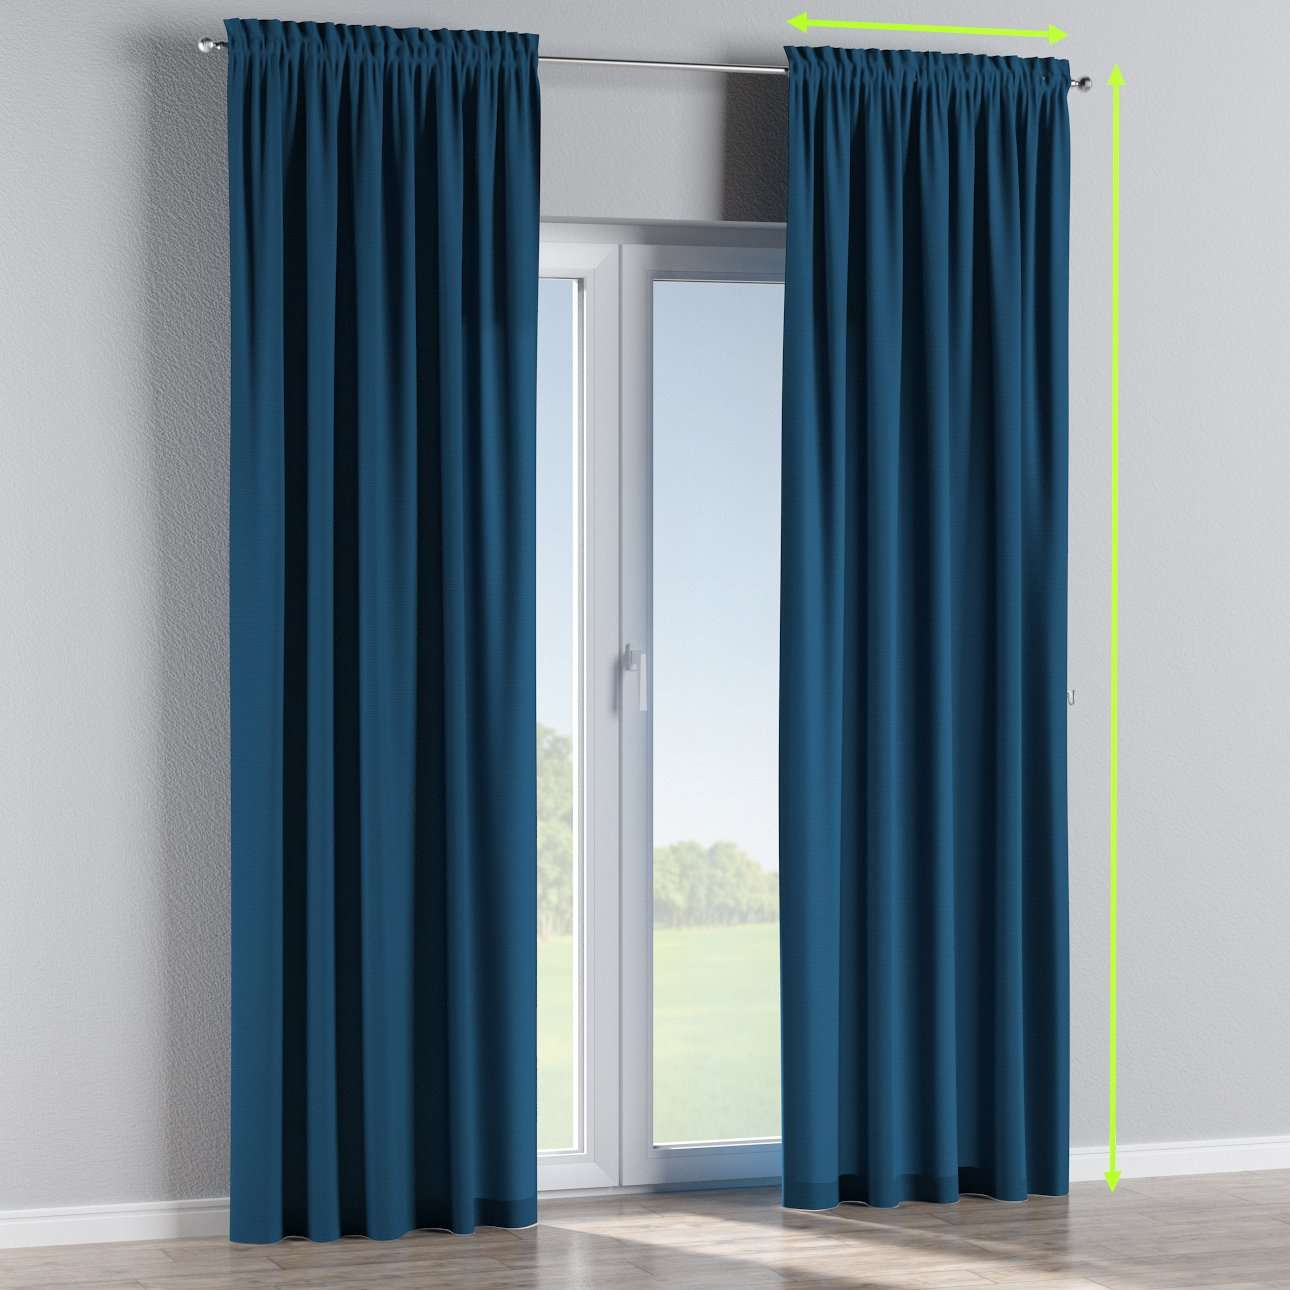 Slot and frill lined curtains in collection Cotton Panama, fabric: 702-30